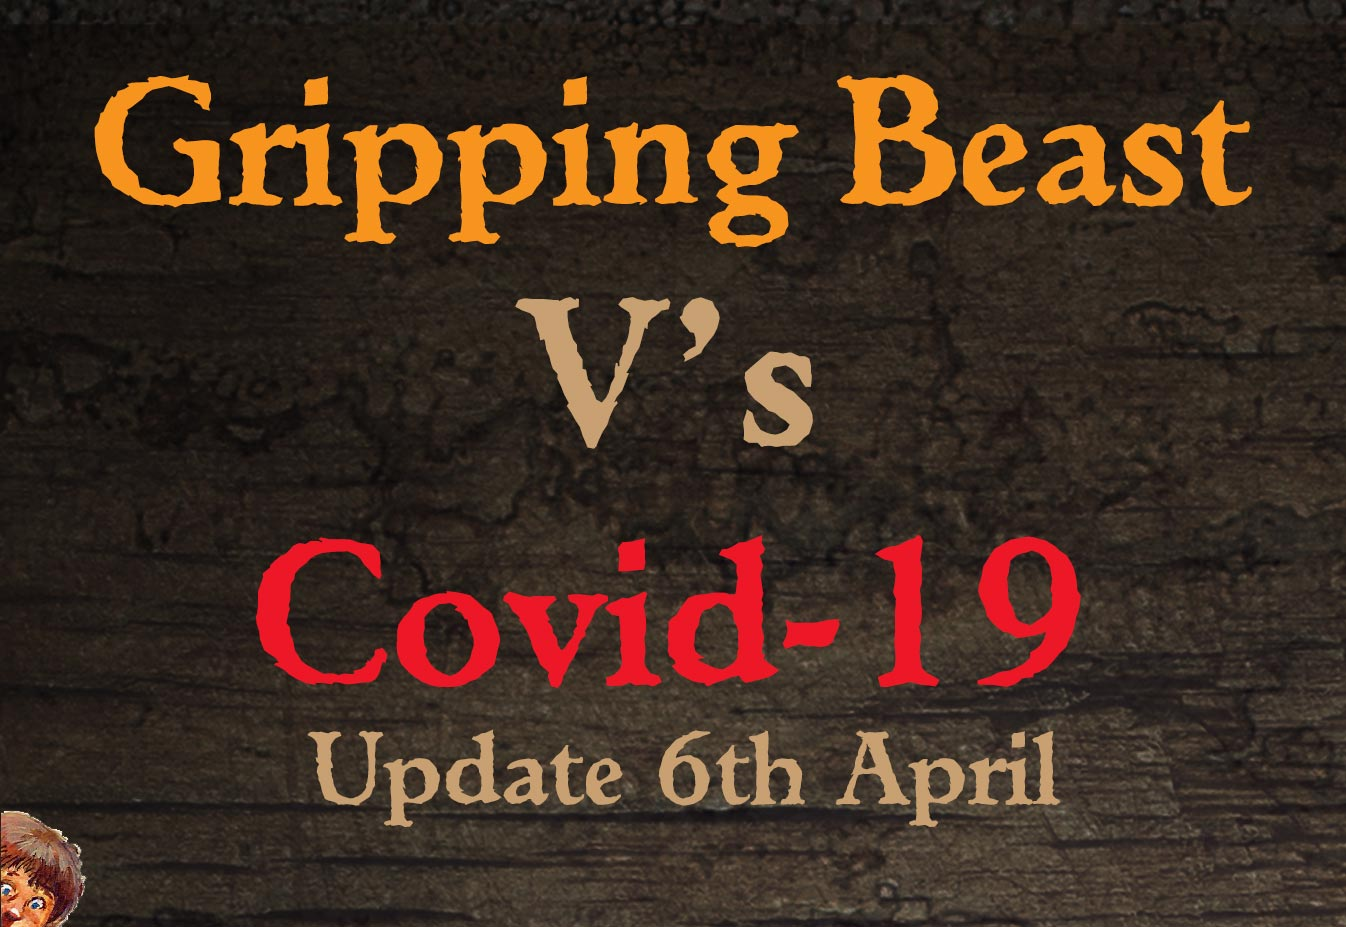 Gripping Beast Vs Covid-19